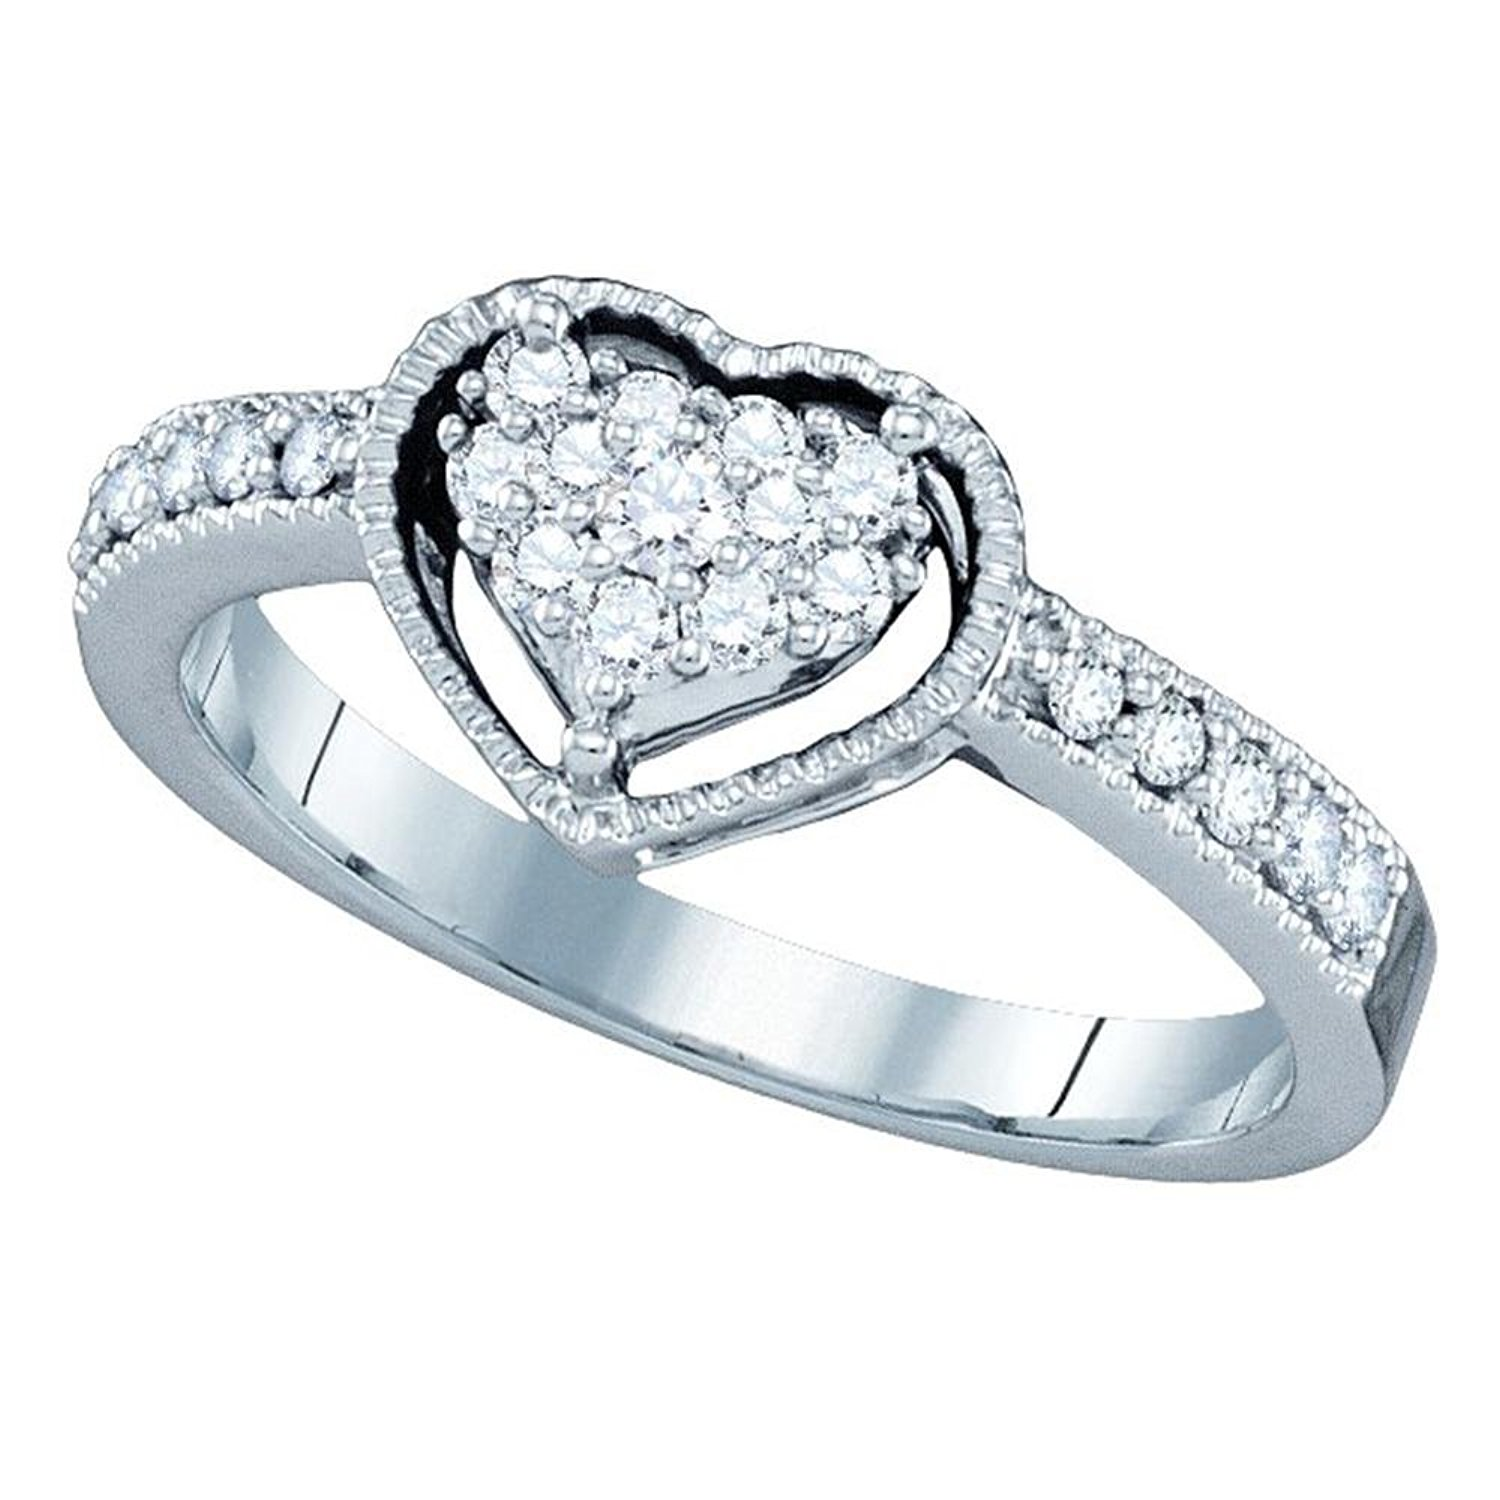 Halo Heart Diamond Promise Ring Solid 14k White Gold Bridal Love Band Round Side Stones Fancy 1/3 ctw